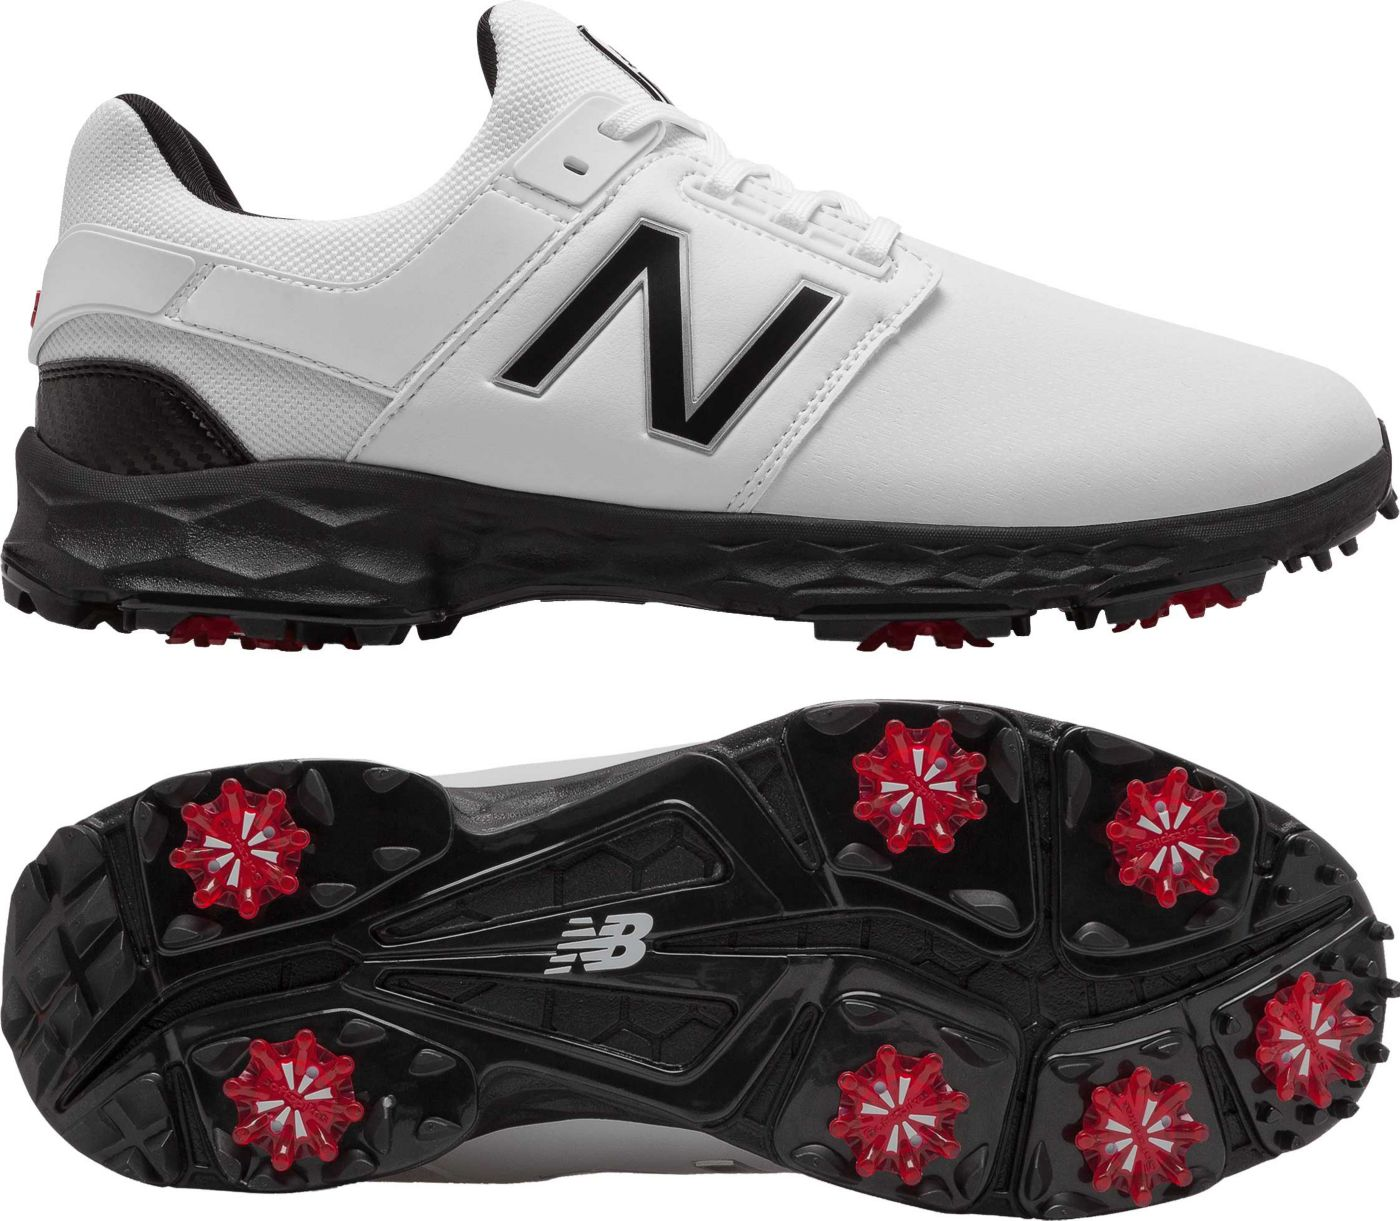 New Balance Men's Fresh Foam LinksPro Golf Shoes